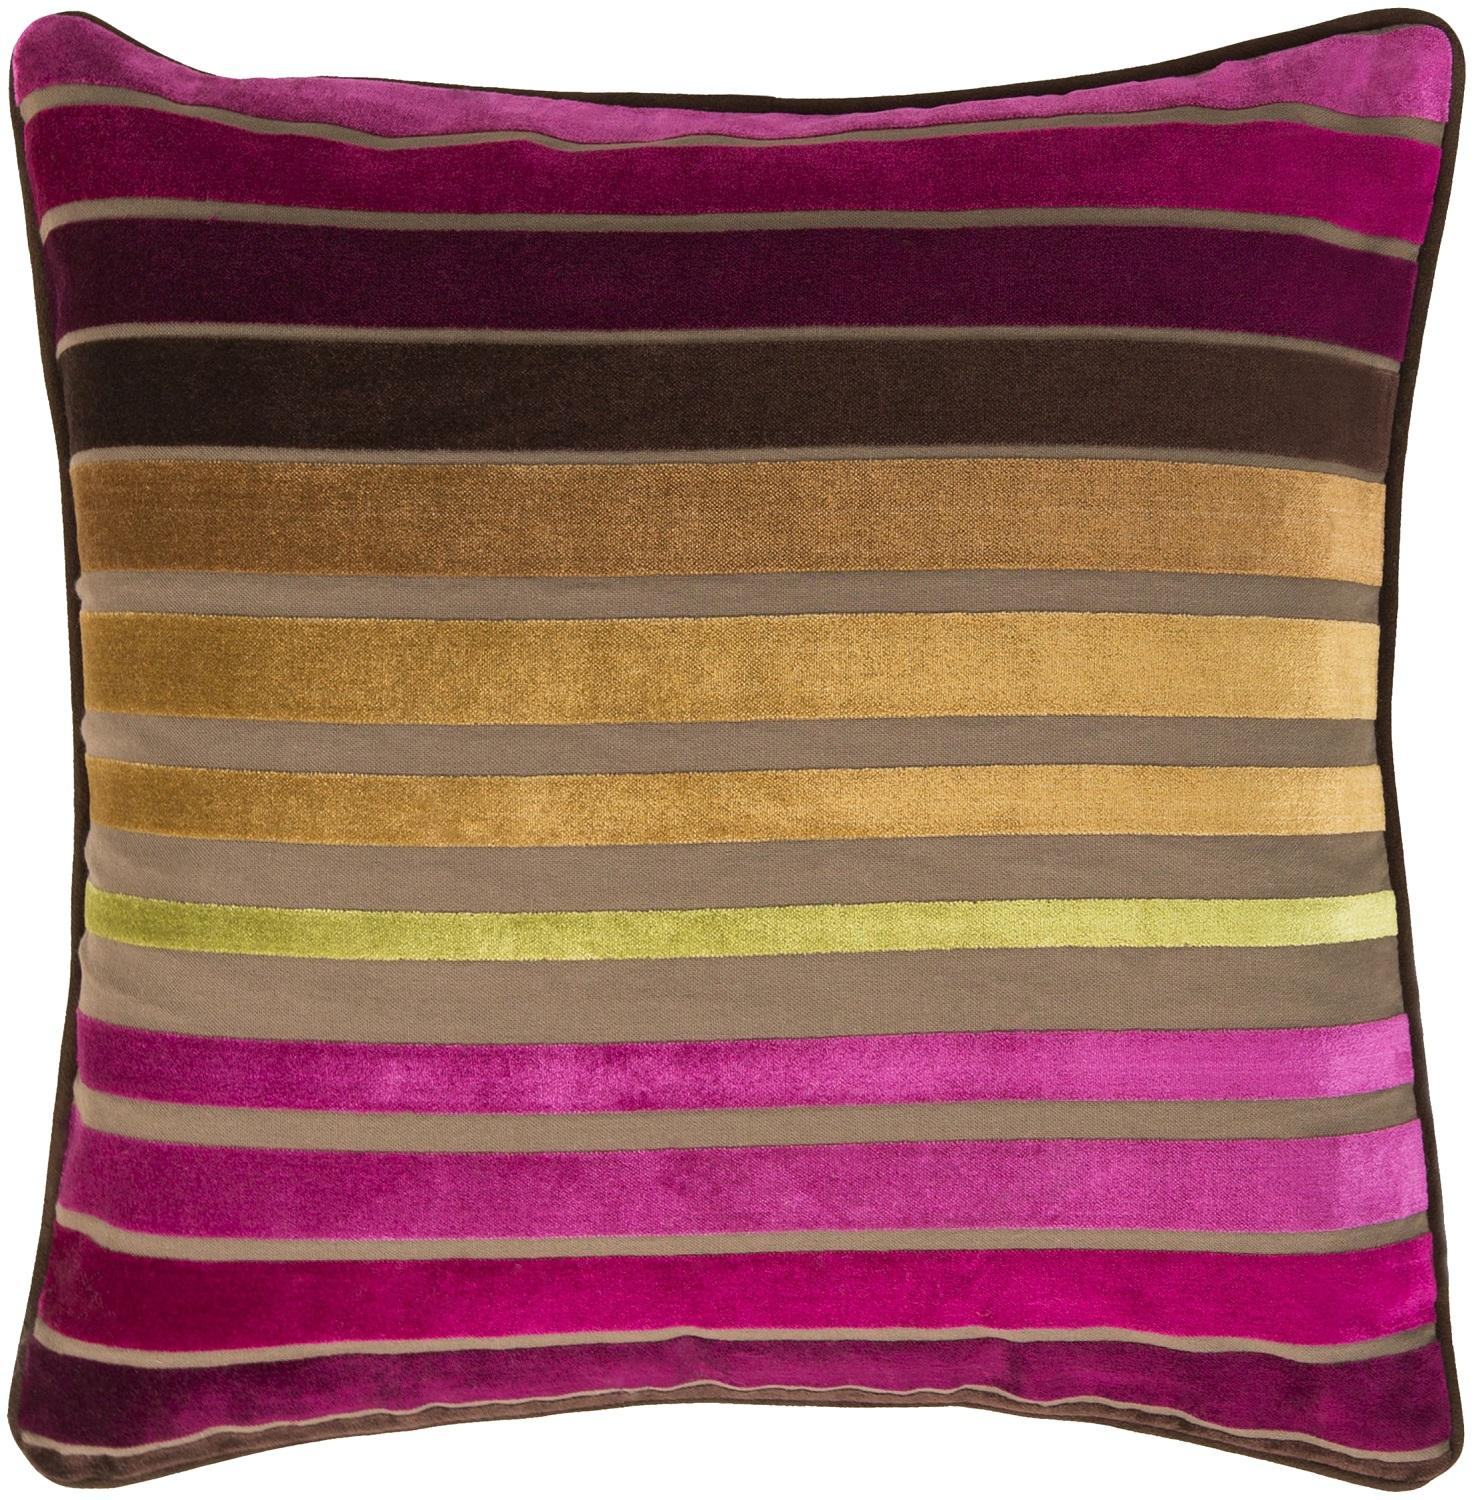 Red Brown Beige Throw Pillows : 22